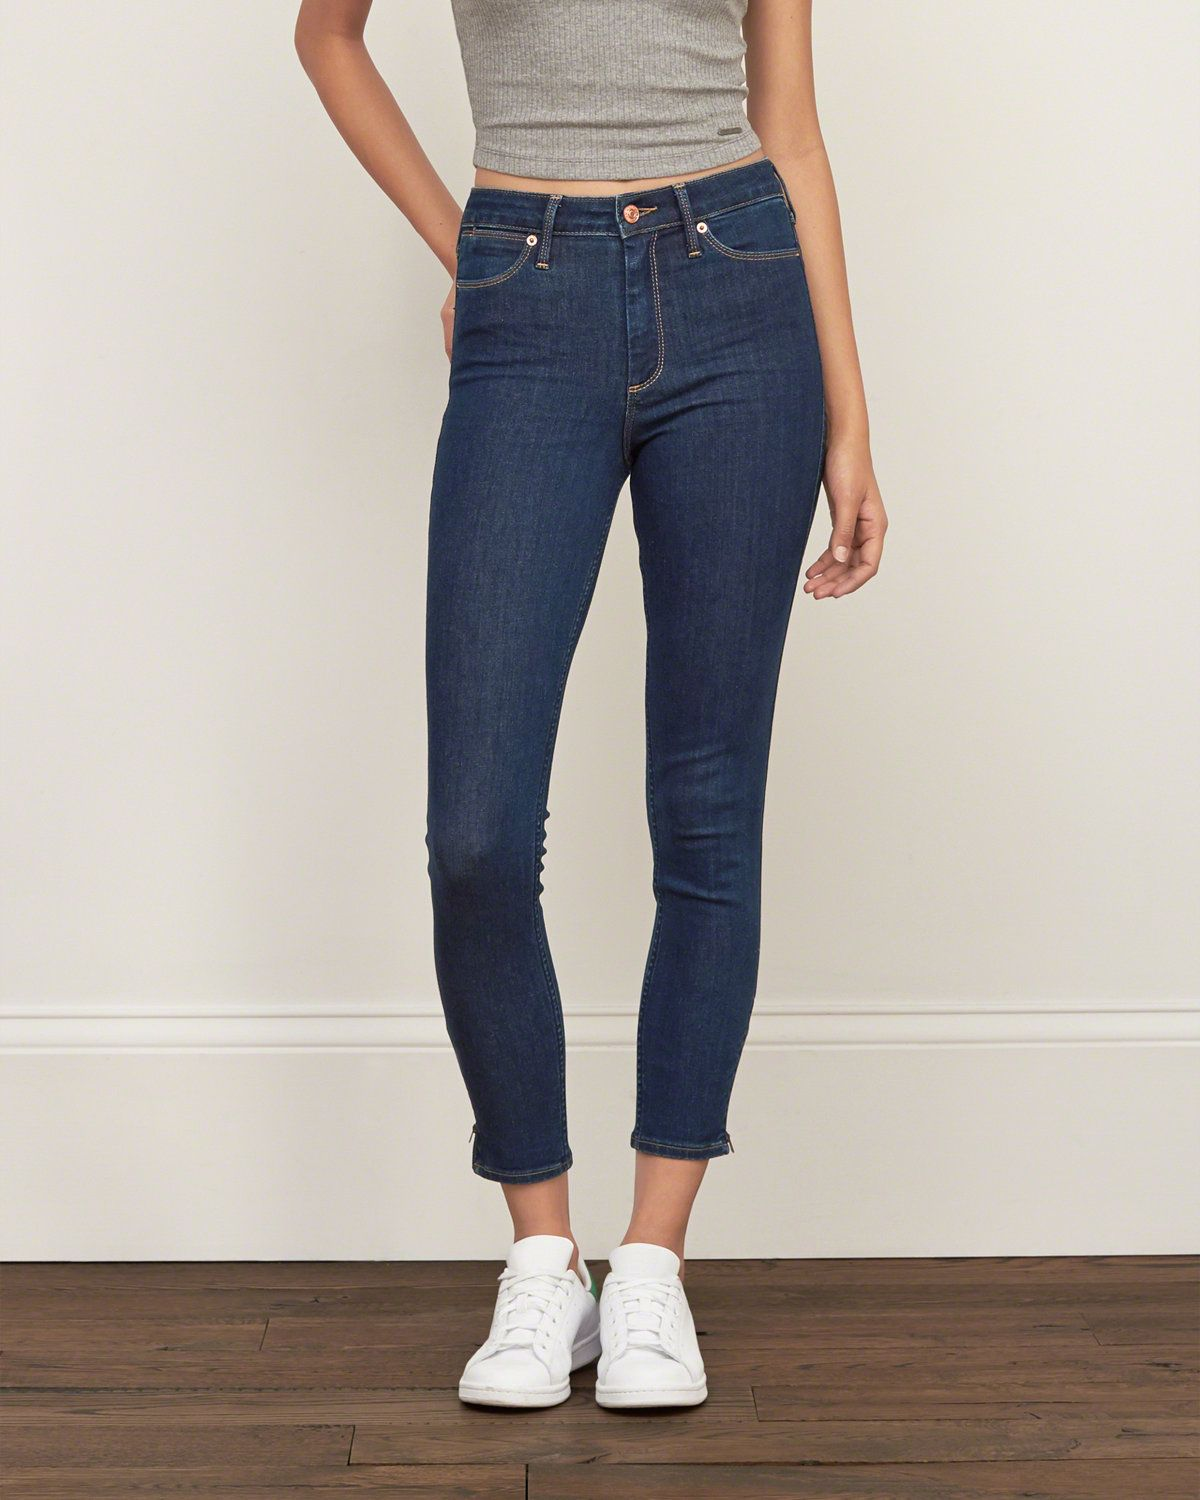 High Rise Ankle Super Skinny Jeans Outfits Con Jeans Women Jeans Jeans